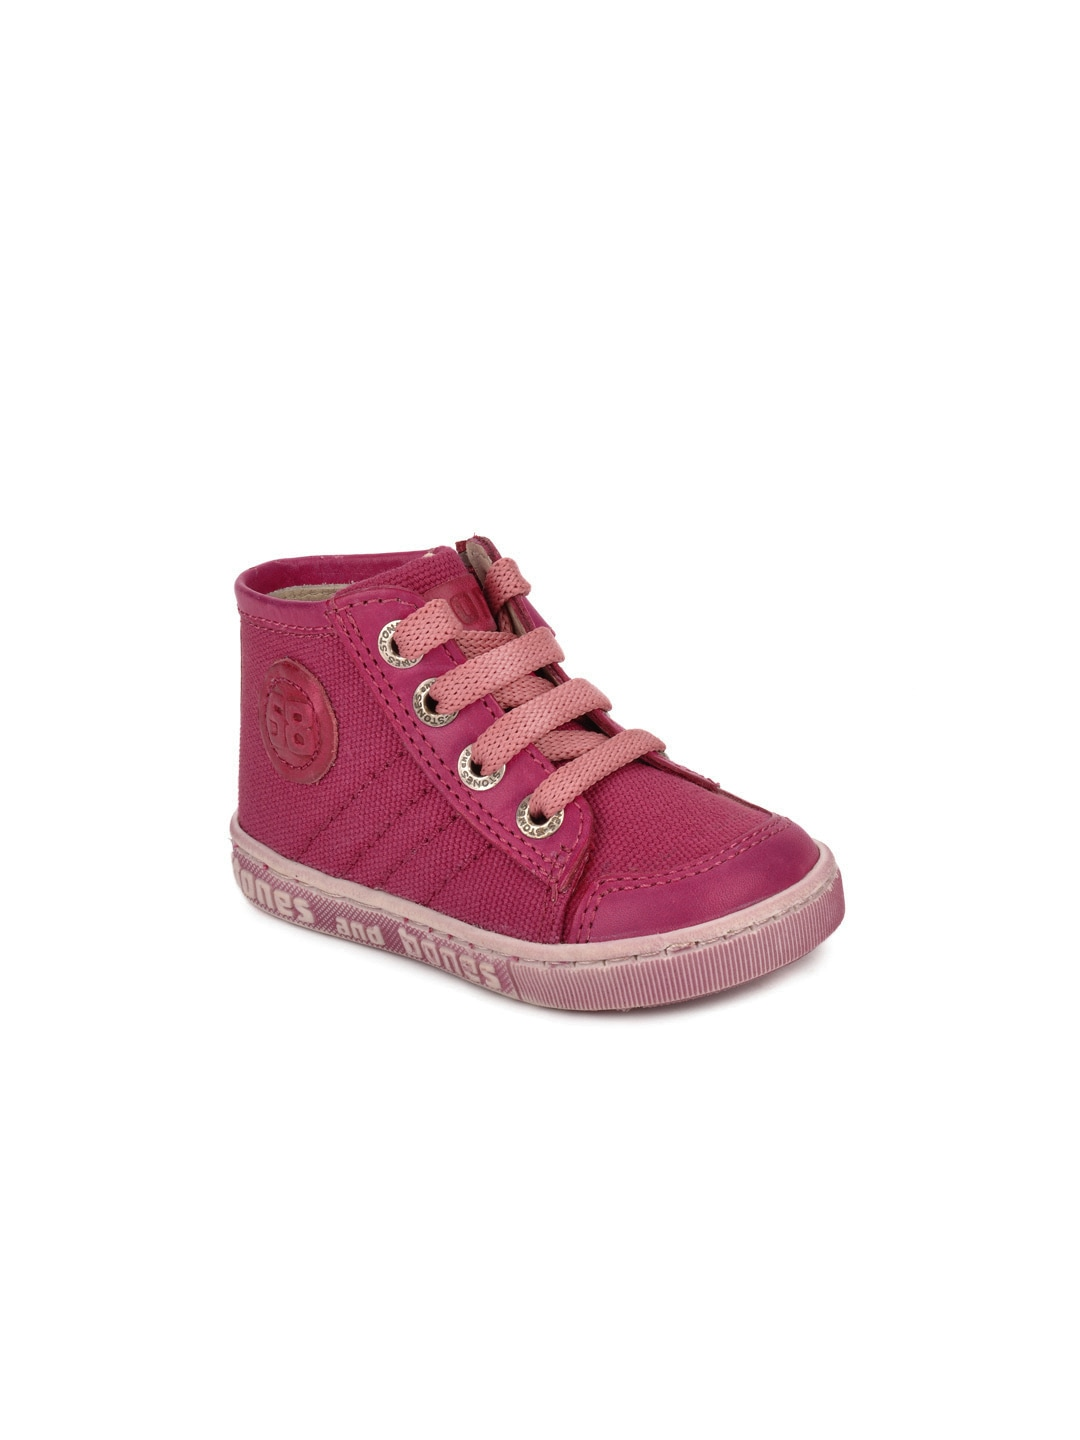 Stones and Bones Girls Pink Clio Canvas Shoes